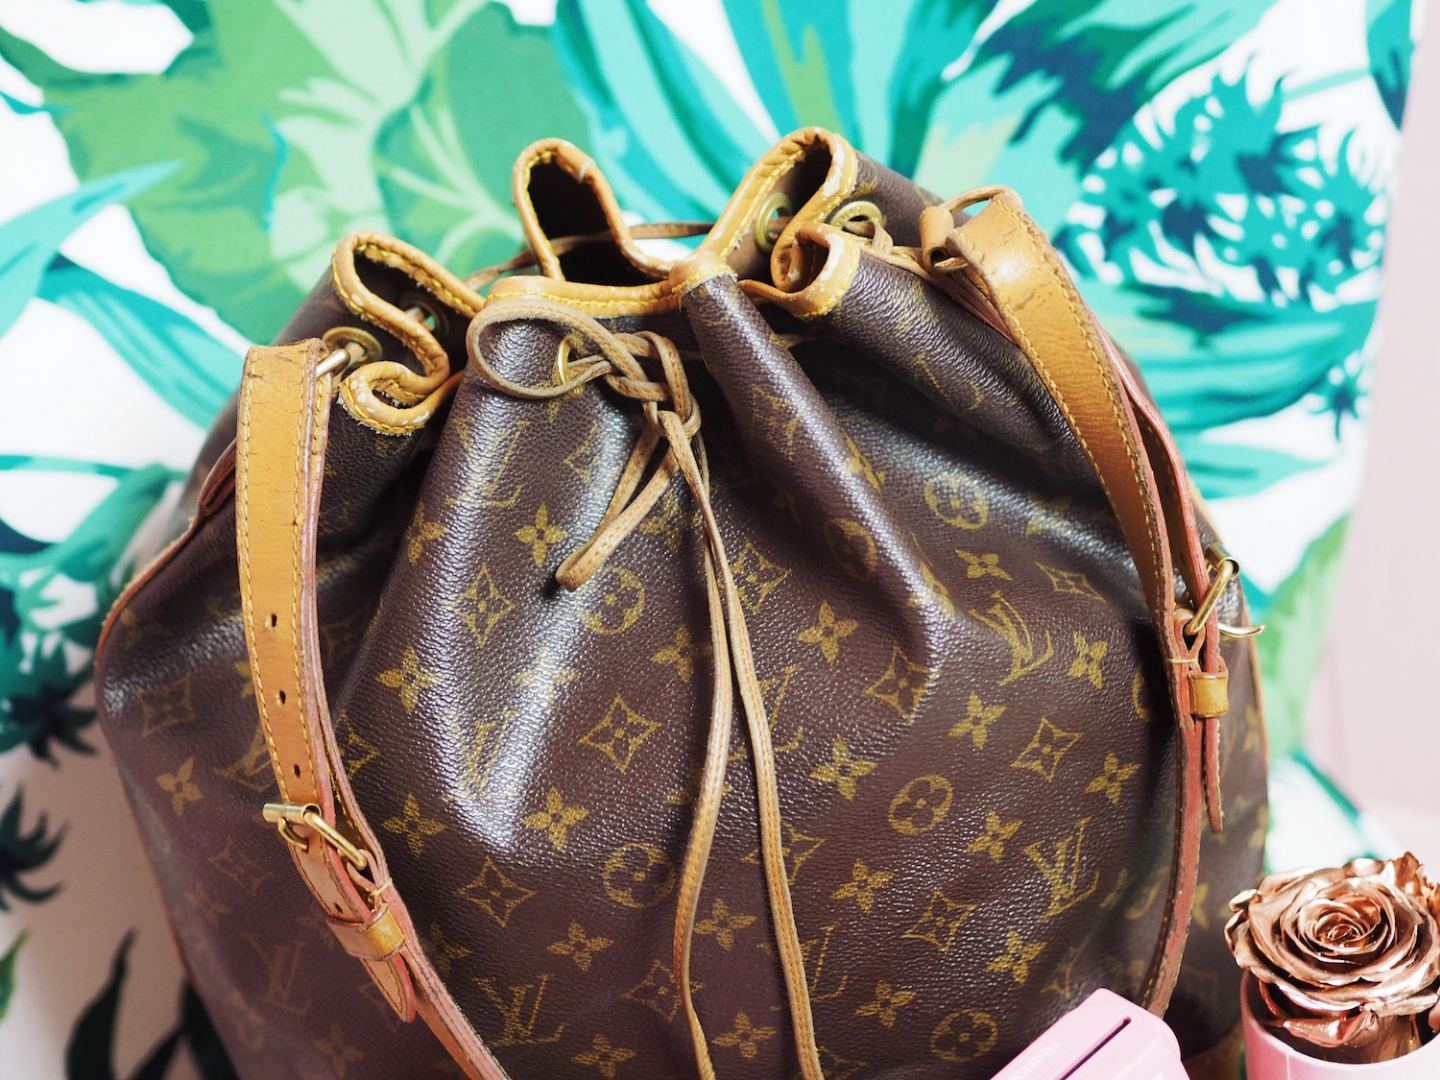 louis vuitton bag handbag noe vintage duffle detail drawstring